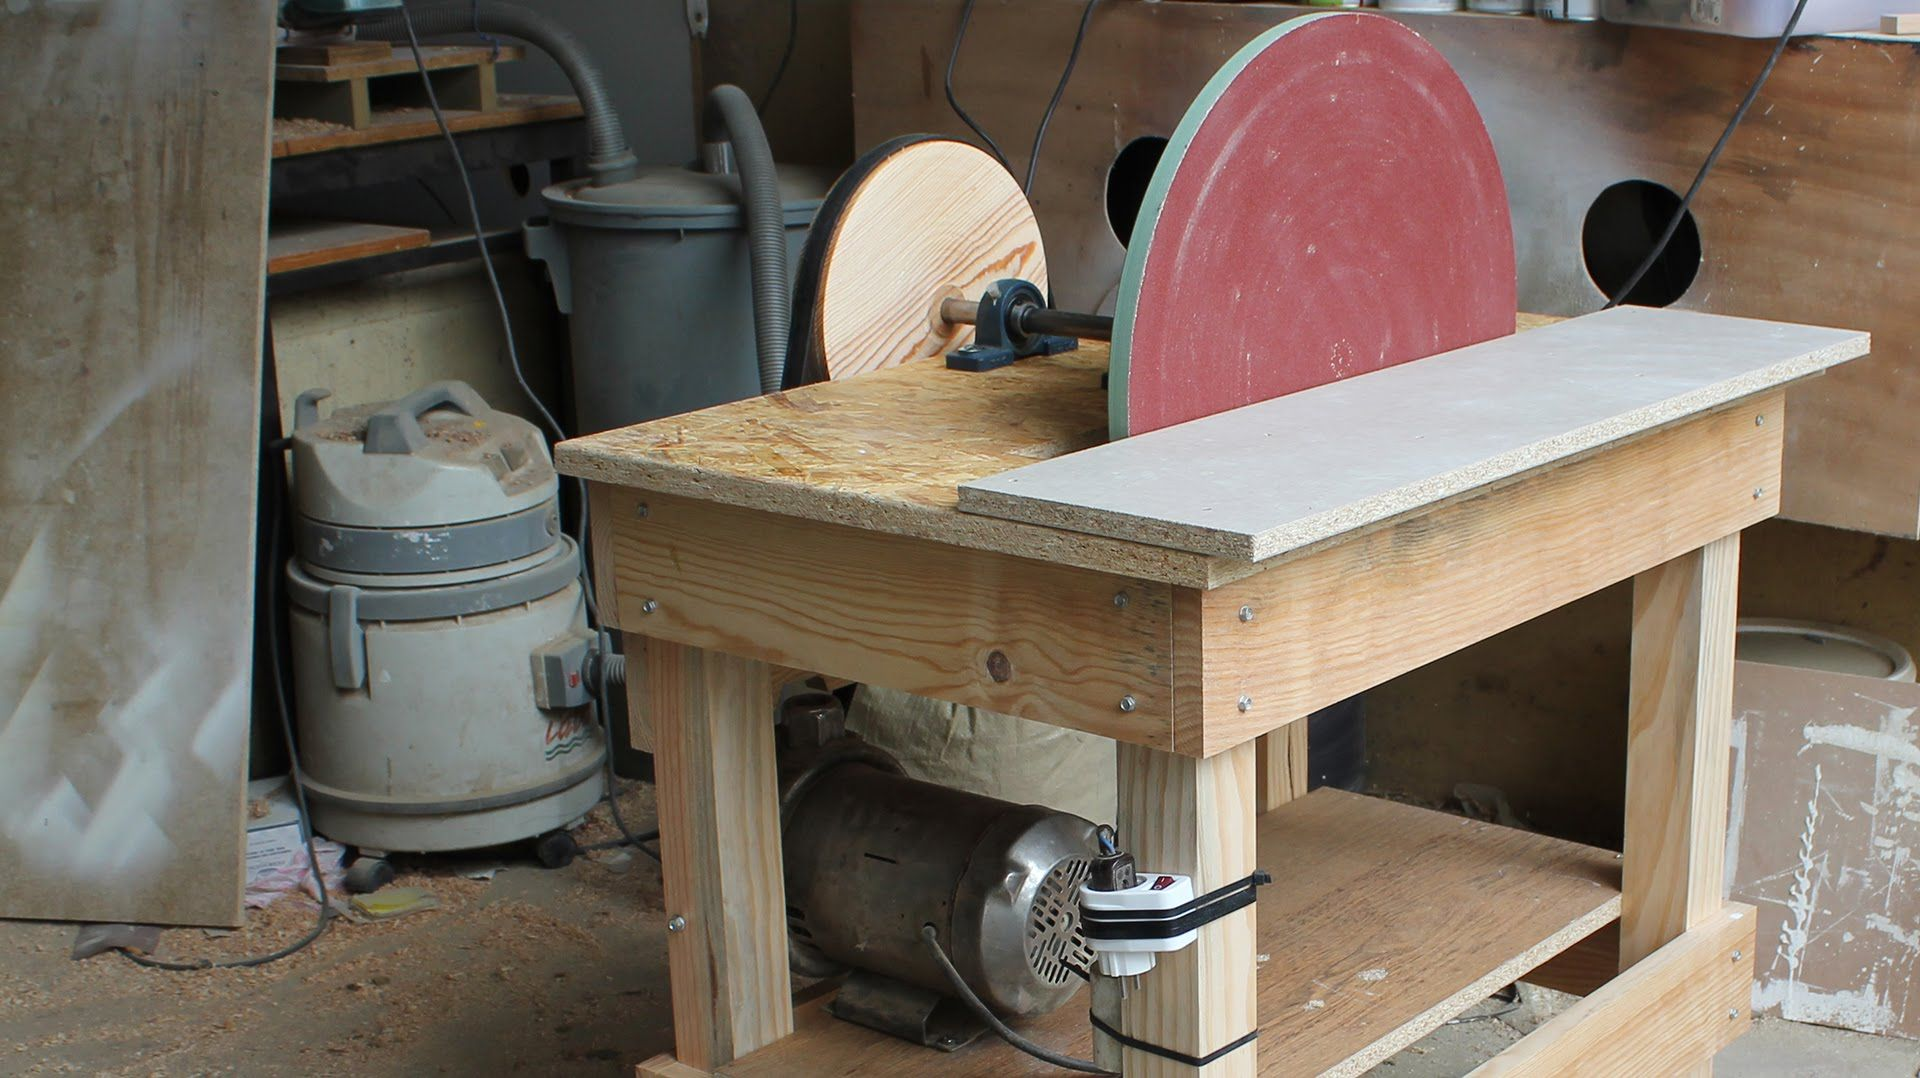 Disk Sander Homemade 20 Disc Woodworking Finishes Woodworking Homemade Tools